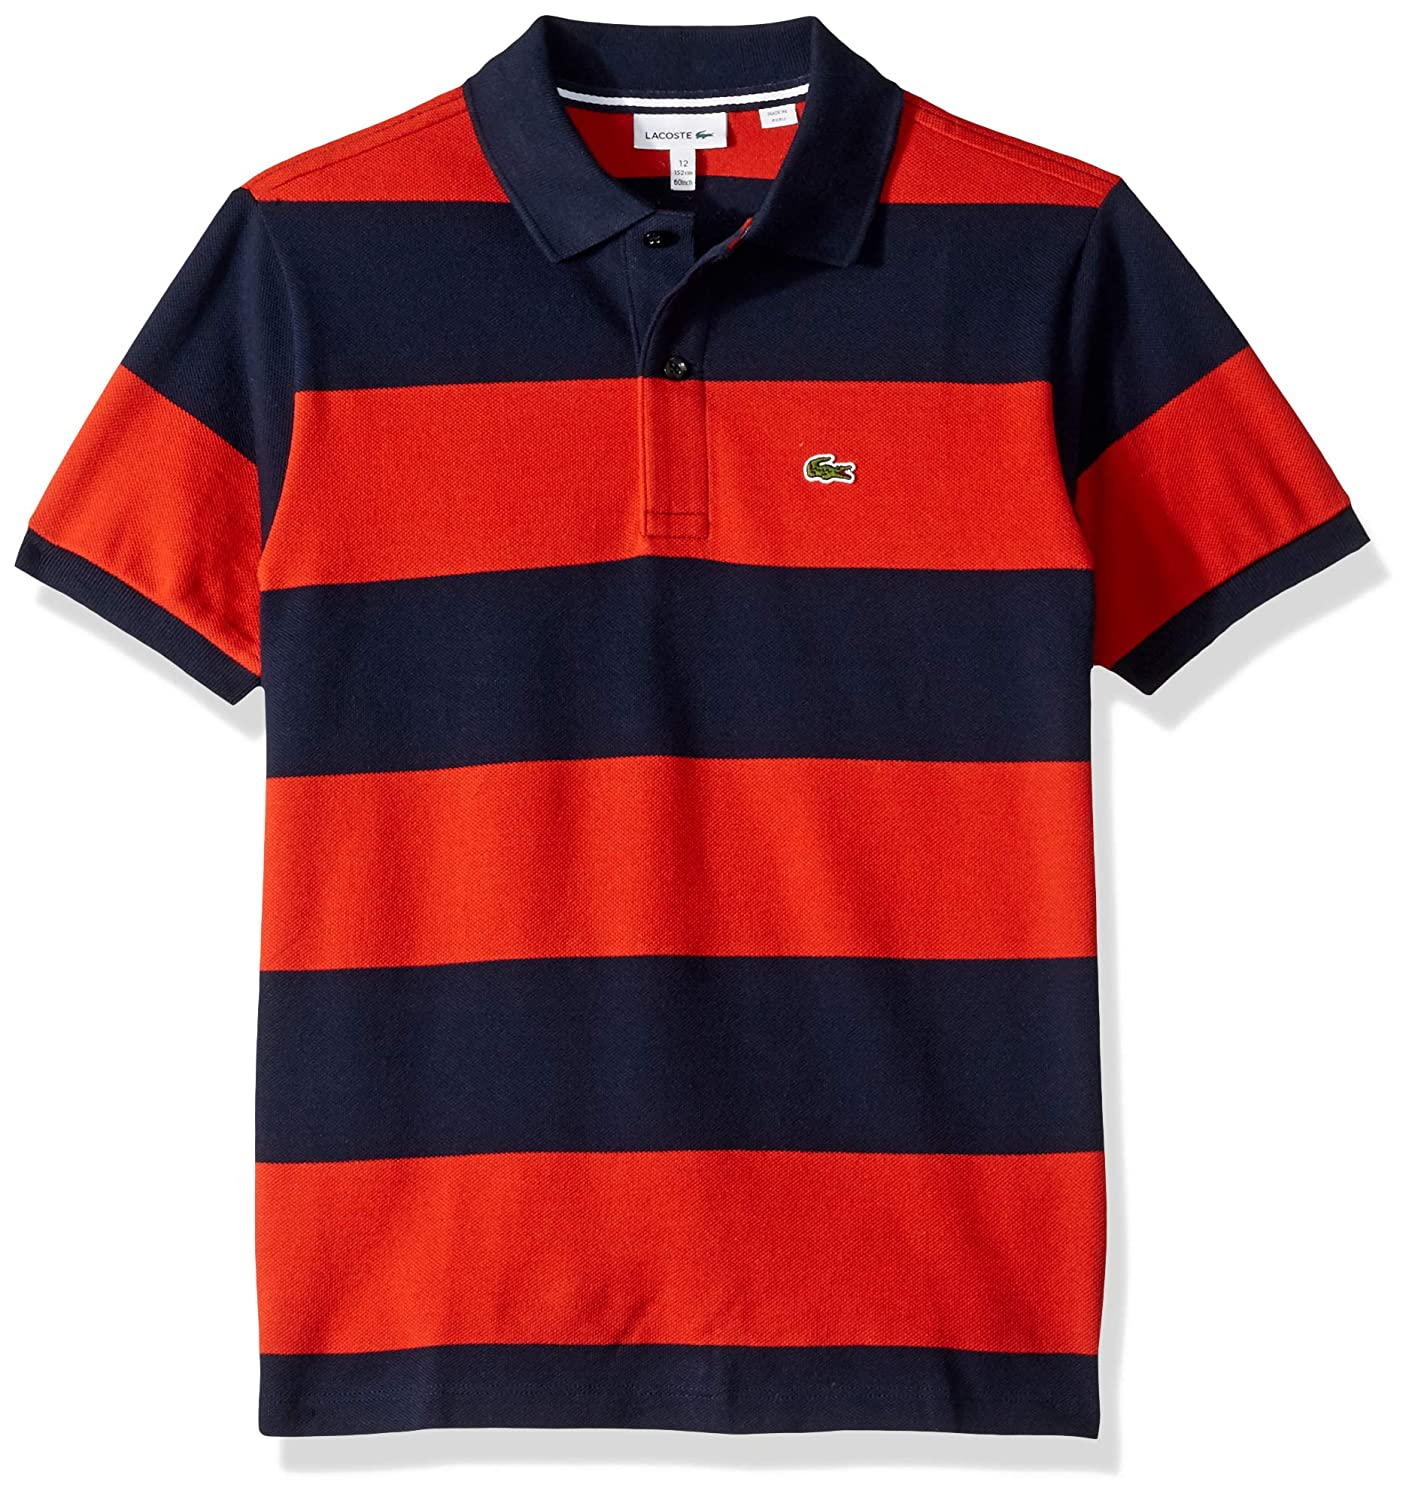 Lacoste Boy Short Sleeve Bicolor Striped Pique Polo PJ3589-51